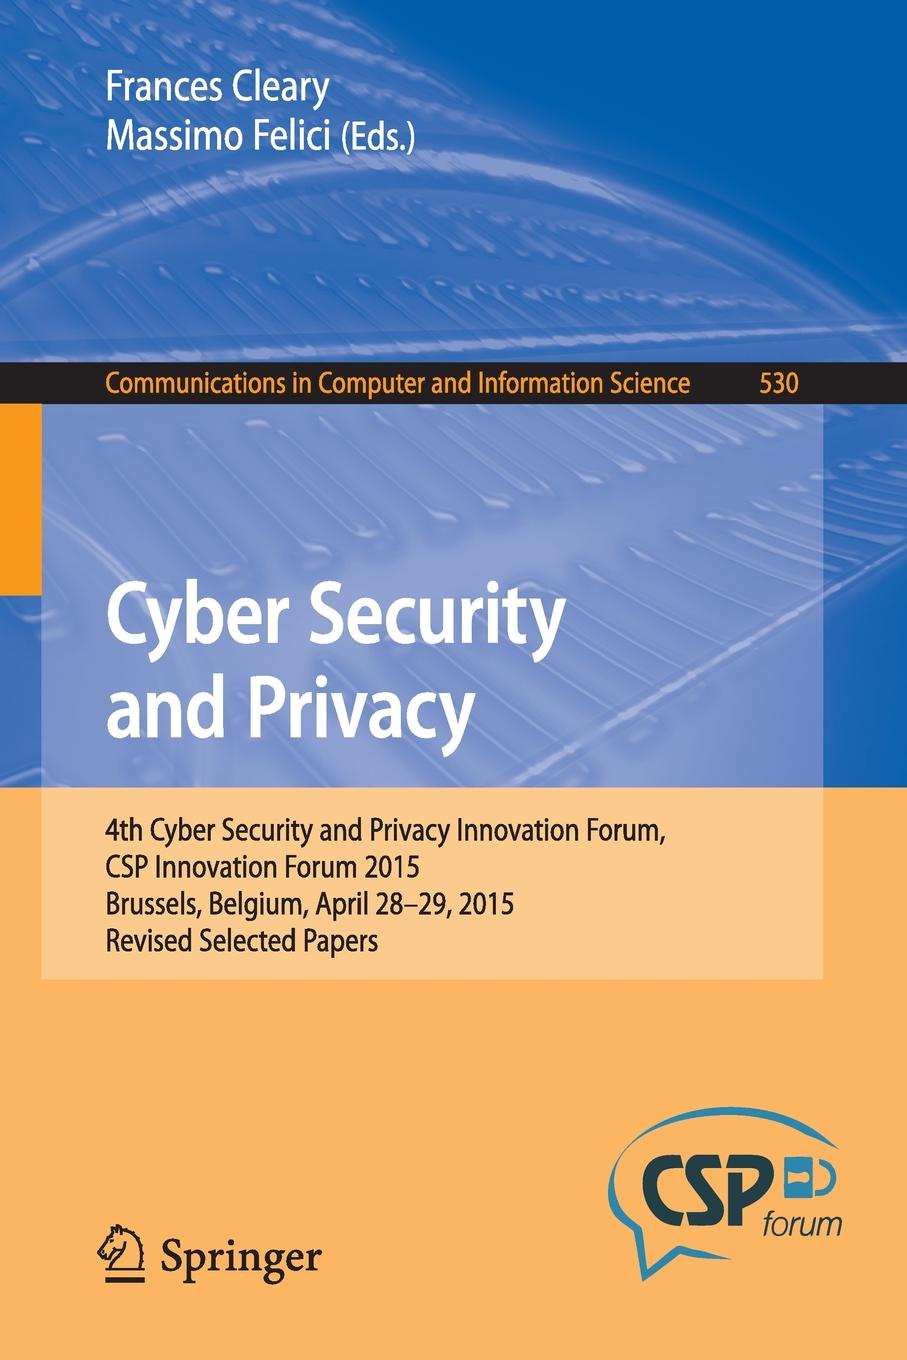 Cyber Security and Privacy. 4th Cyber Security and Privacy Innovation Forum, CSP Innovation Forum 2015, Brussels, Belgium April 28-29, 2015, Revised Selected Papers forum